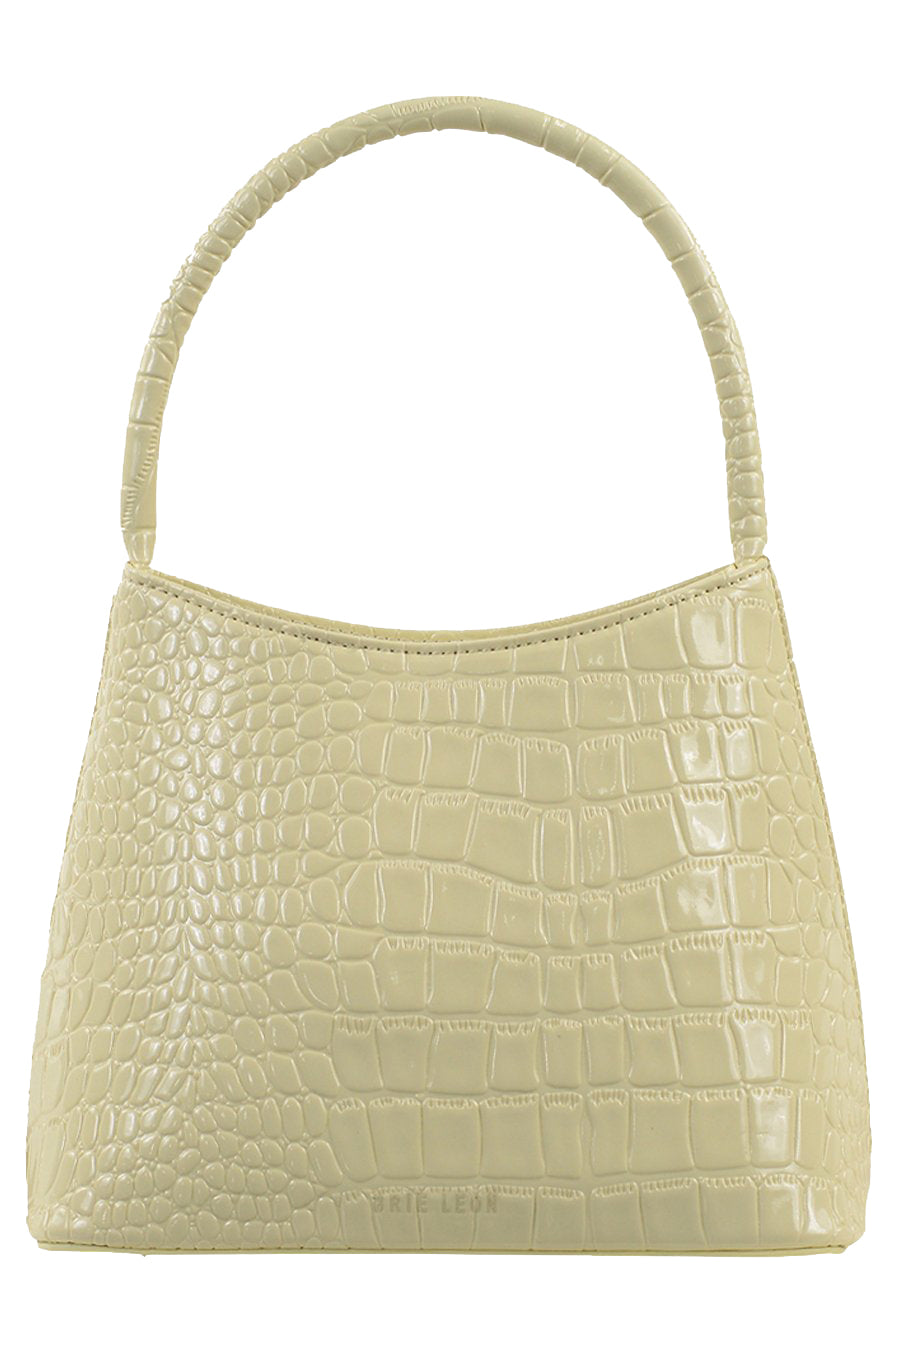 Brie Leon Chloe Bag in Bone Oily Croc